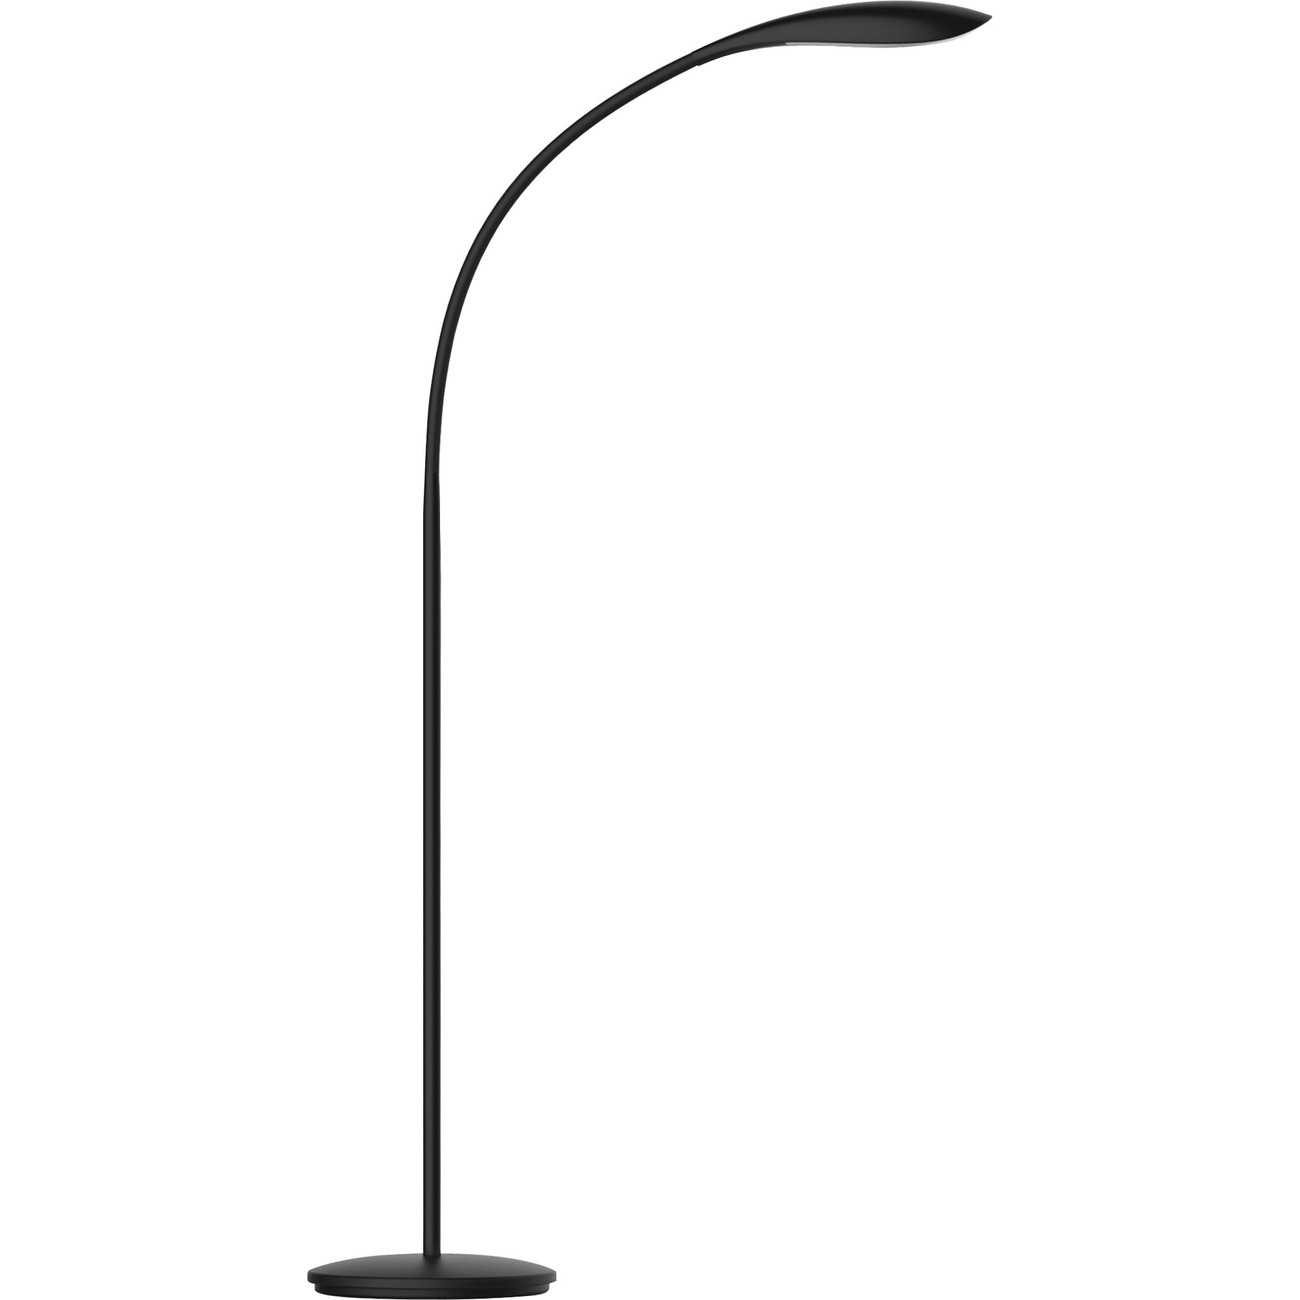 ... modern style with a silicone flex arm for directional lighting wherever you like it. Large l& head and high-powered LEDs provide brilliant lighting ...  sc 1 st  Office Products | Office Supplies | Office Furniture | 1-888-840-7300 & Office Products | Office Supplies | Office Furniture | 1-888-840-7300